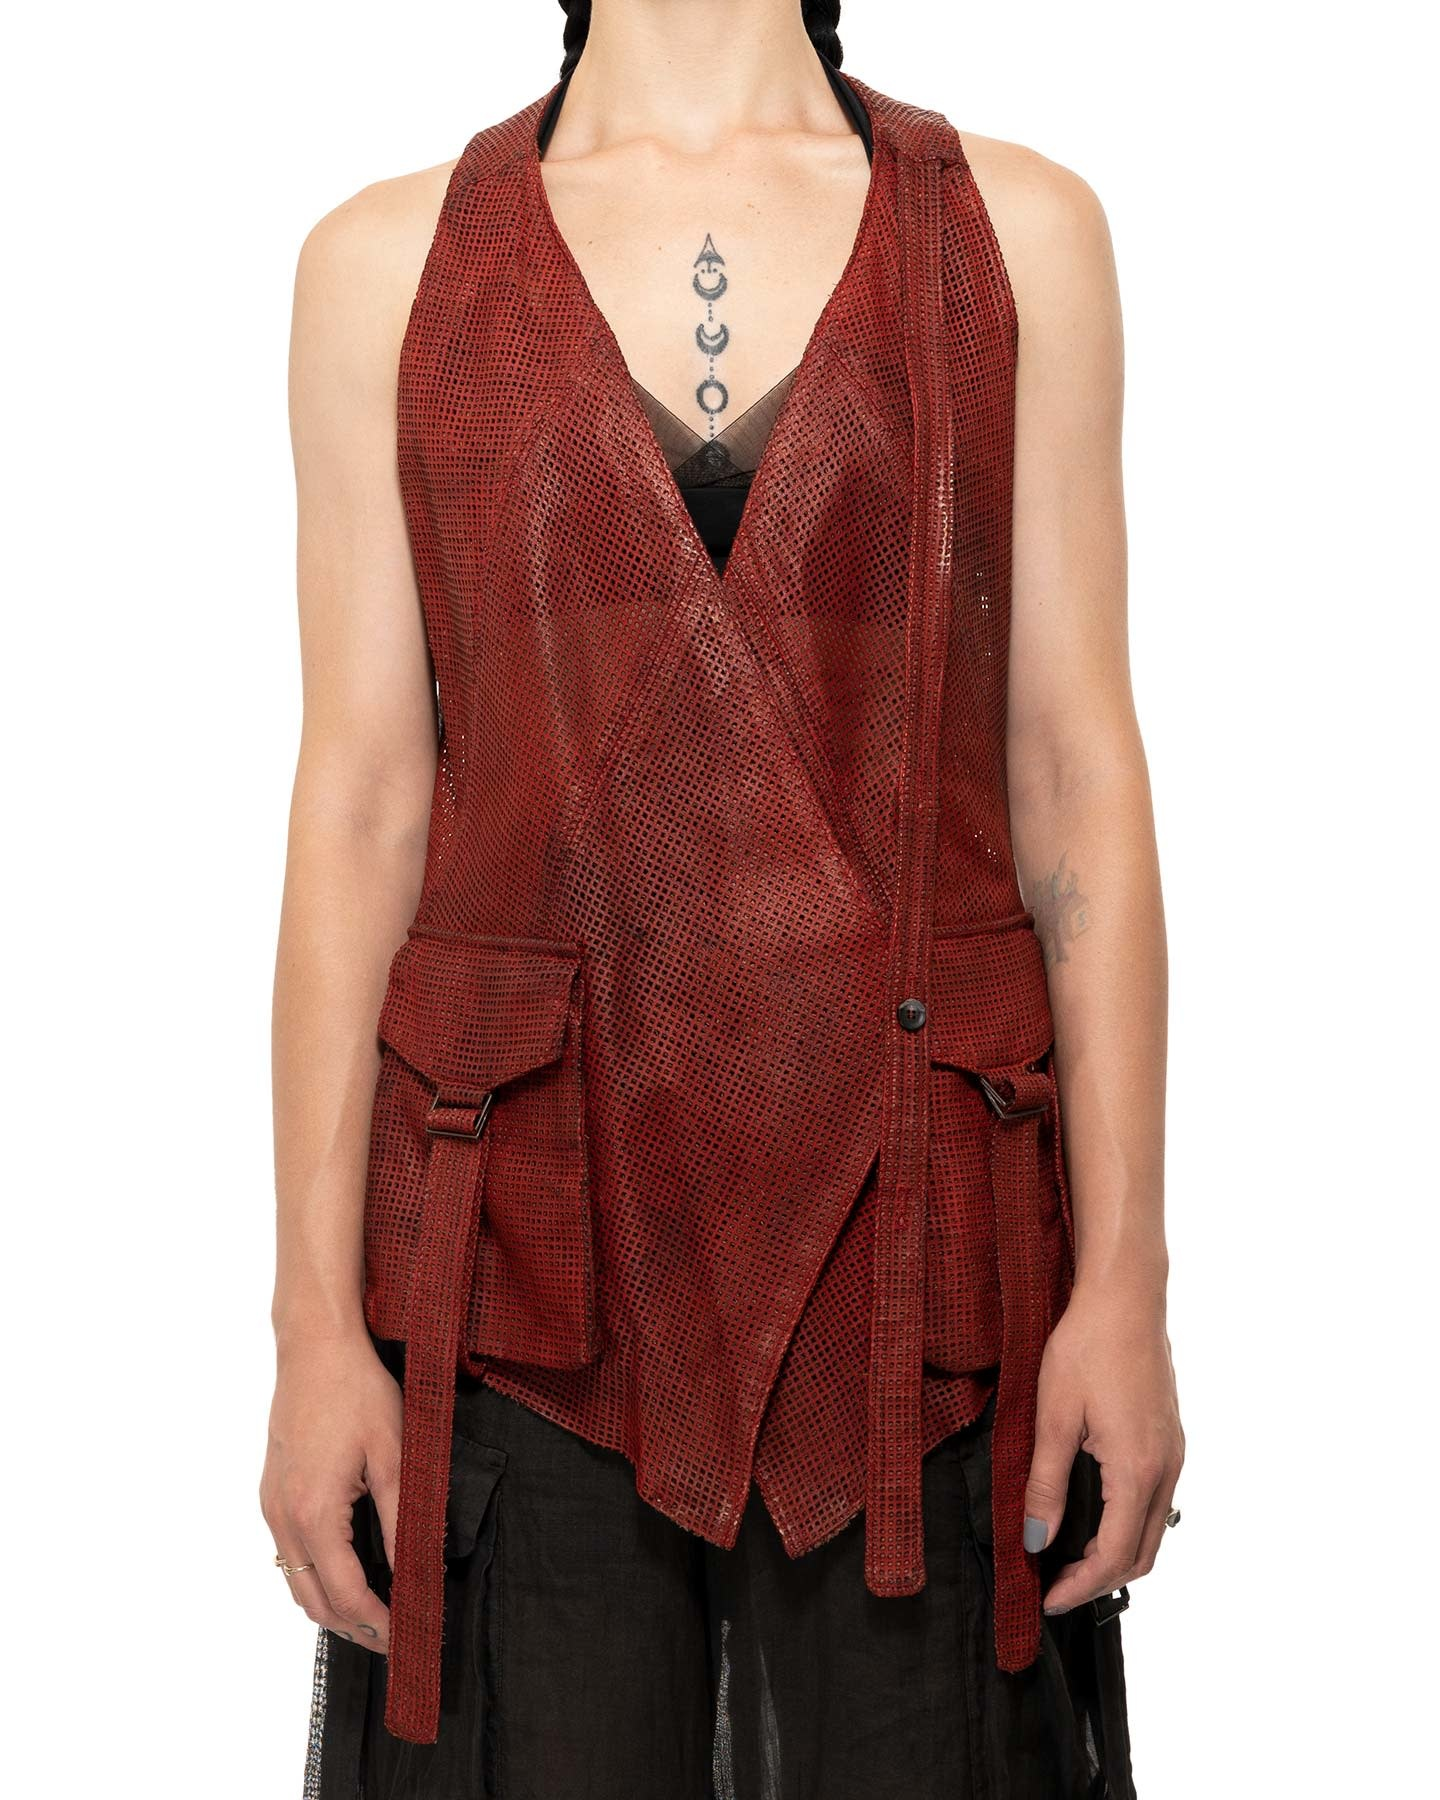 PERFORATED LEATHER VEST - CINAMMON